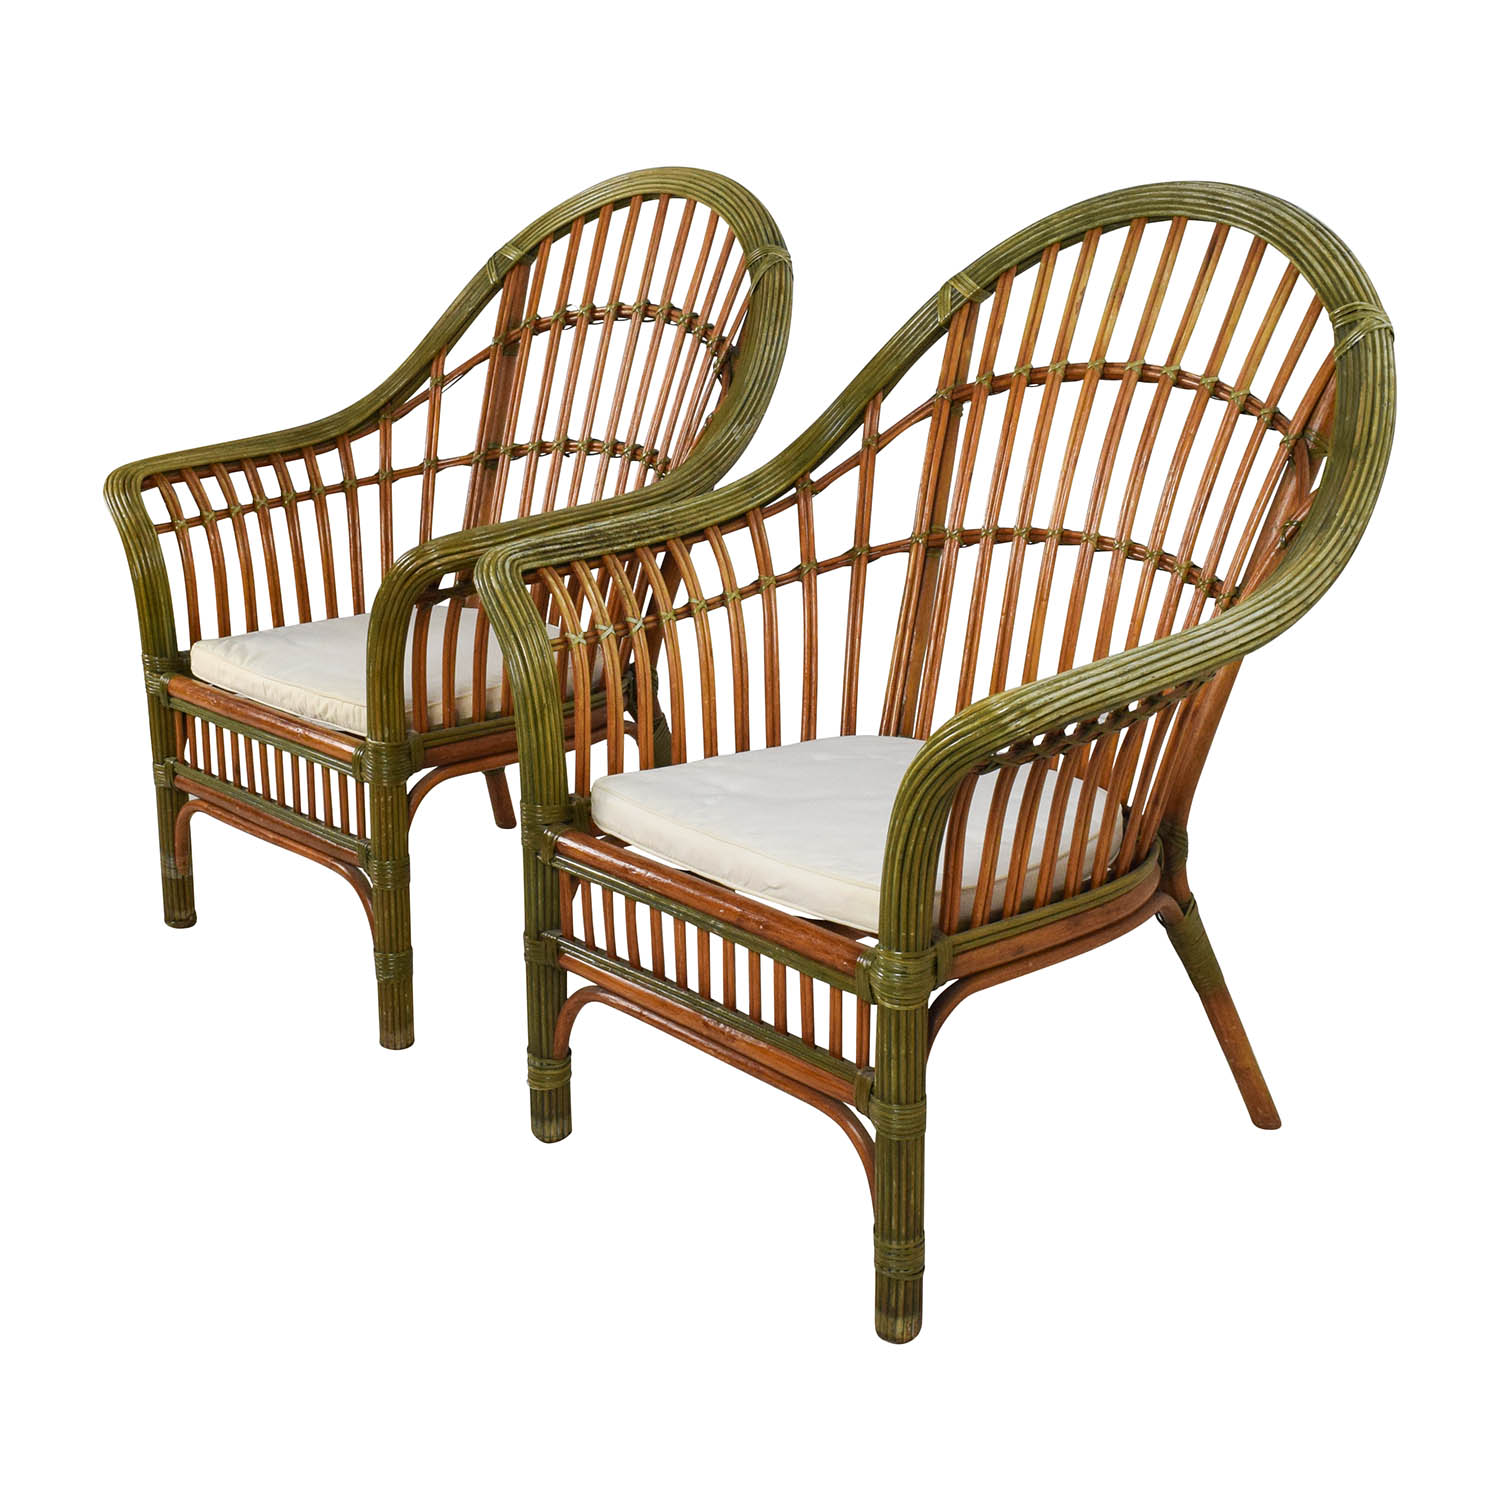 61% OFF - Pair Of Wicker Arm Chairs With Cushions / Chairs